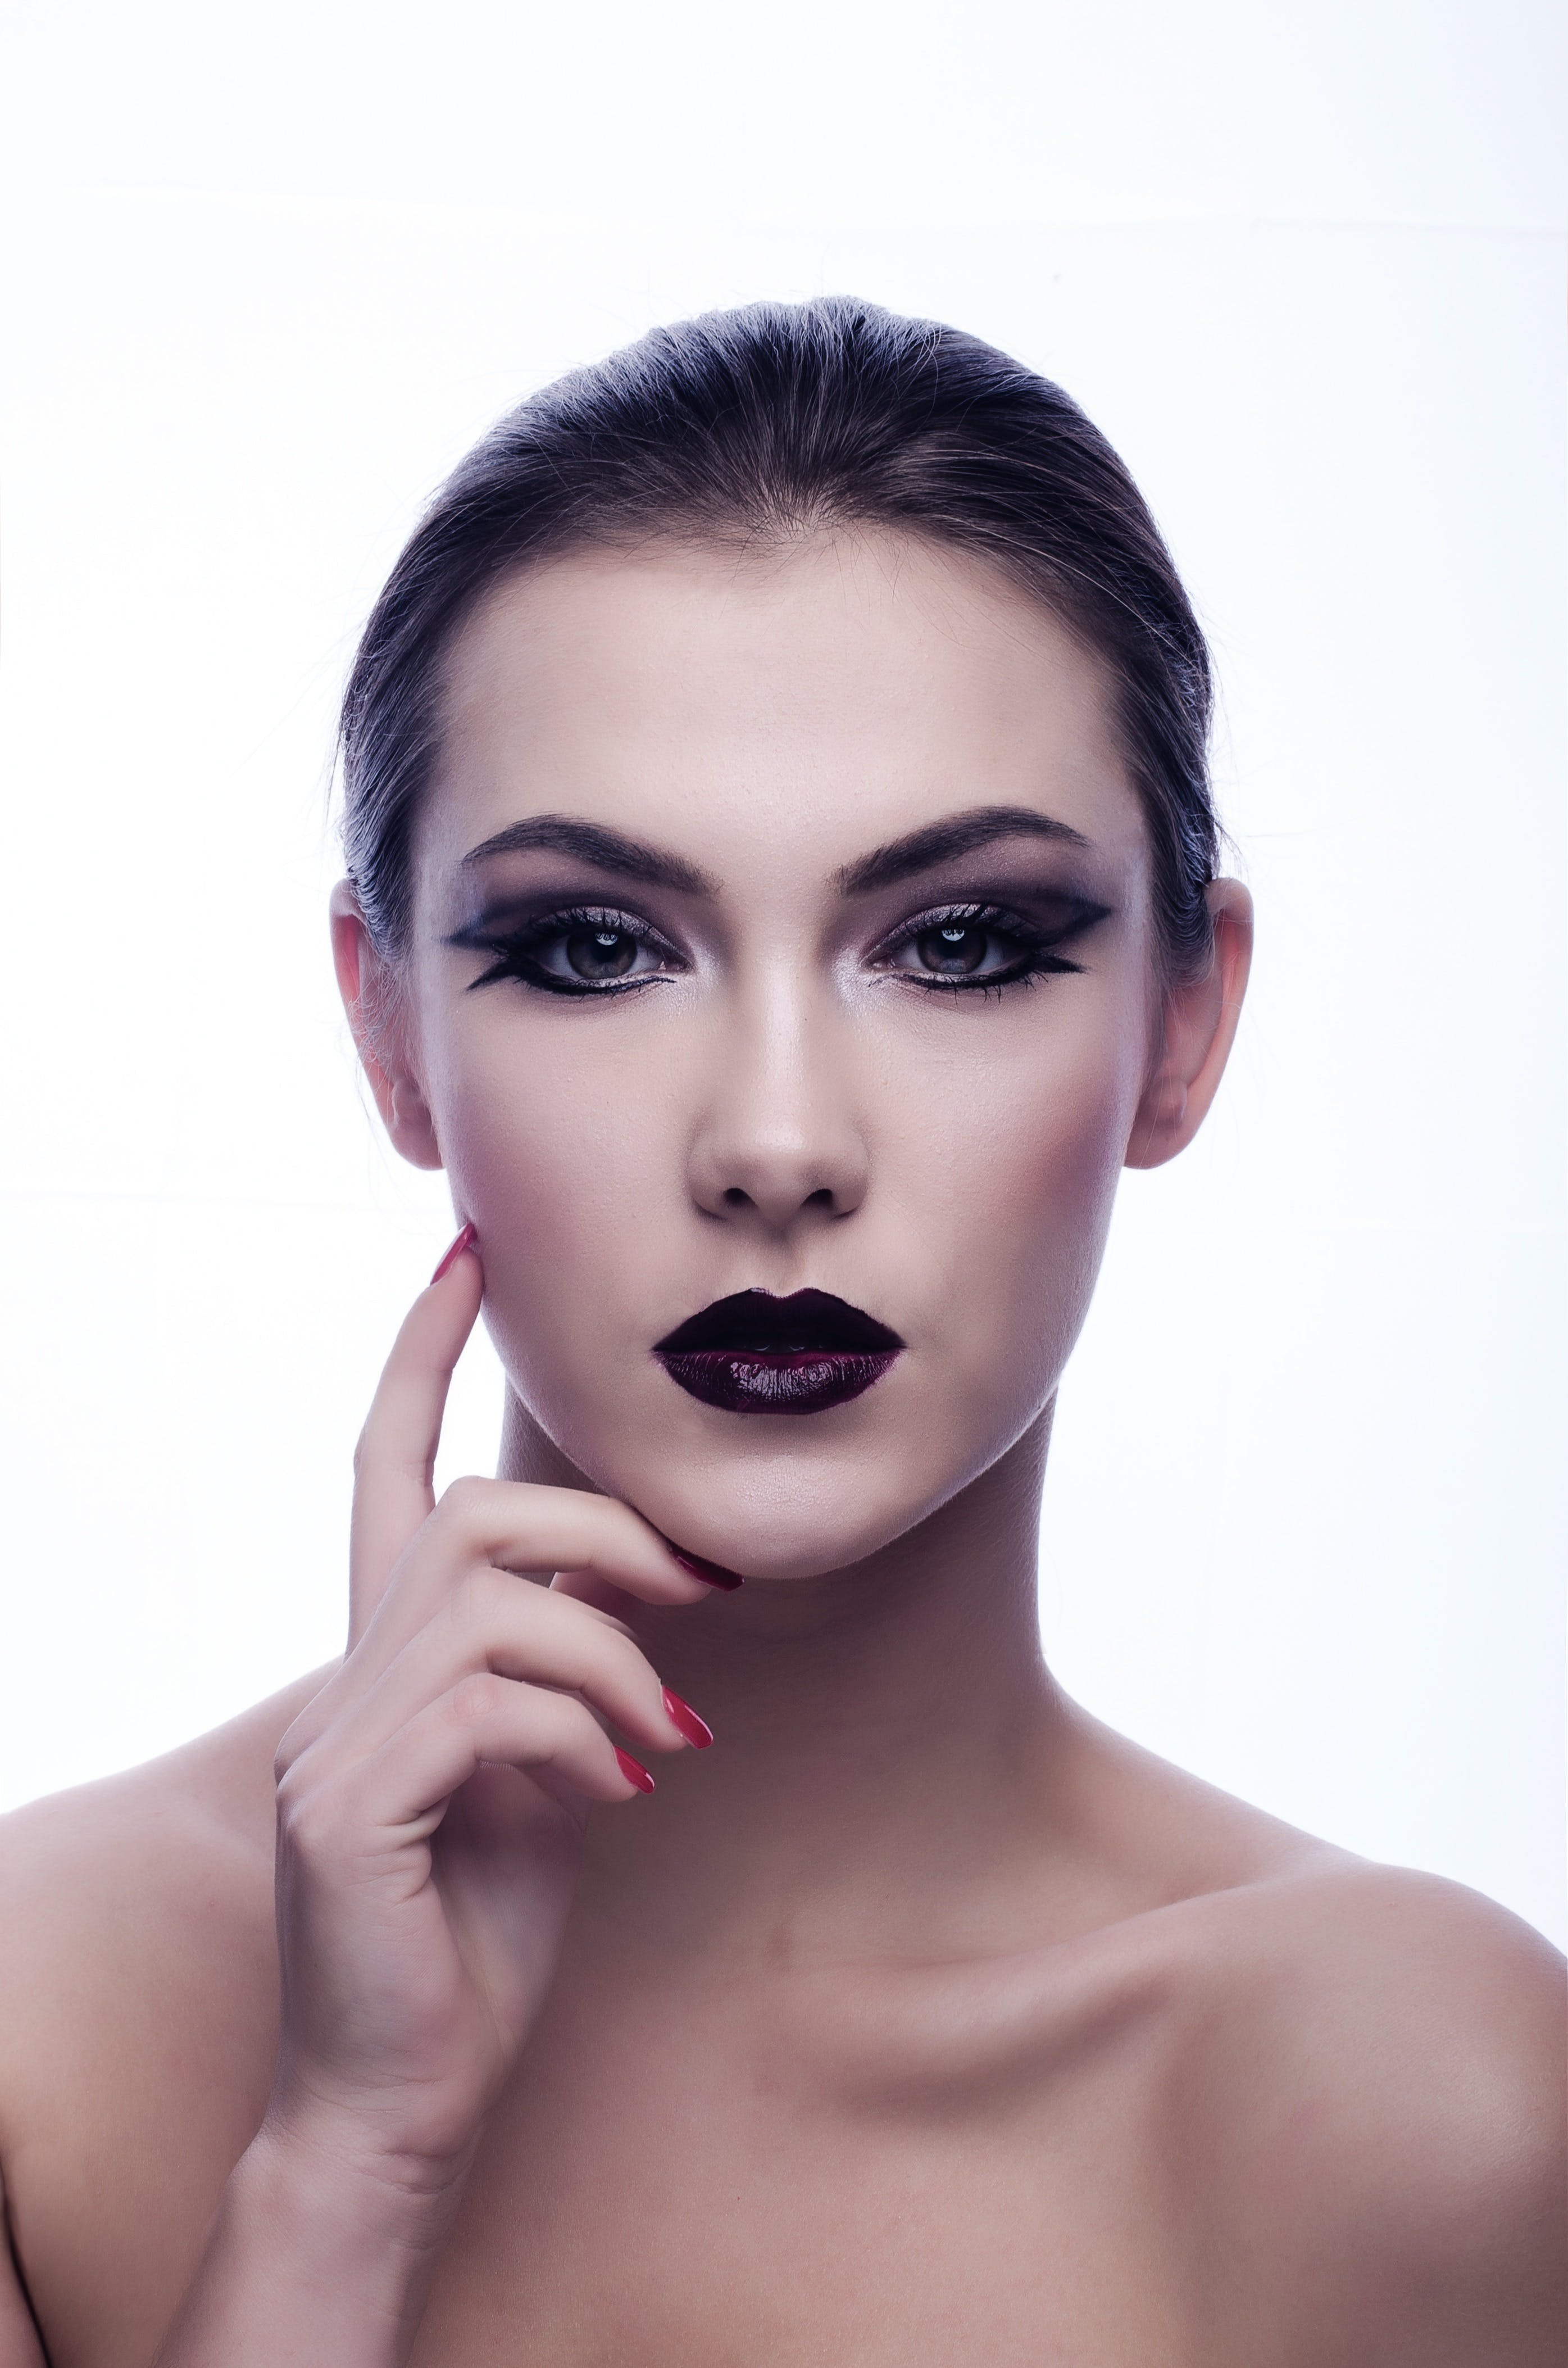 Naked Woman in Black Eyeliner and Maroon Lips